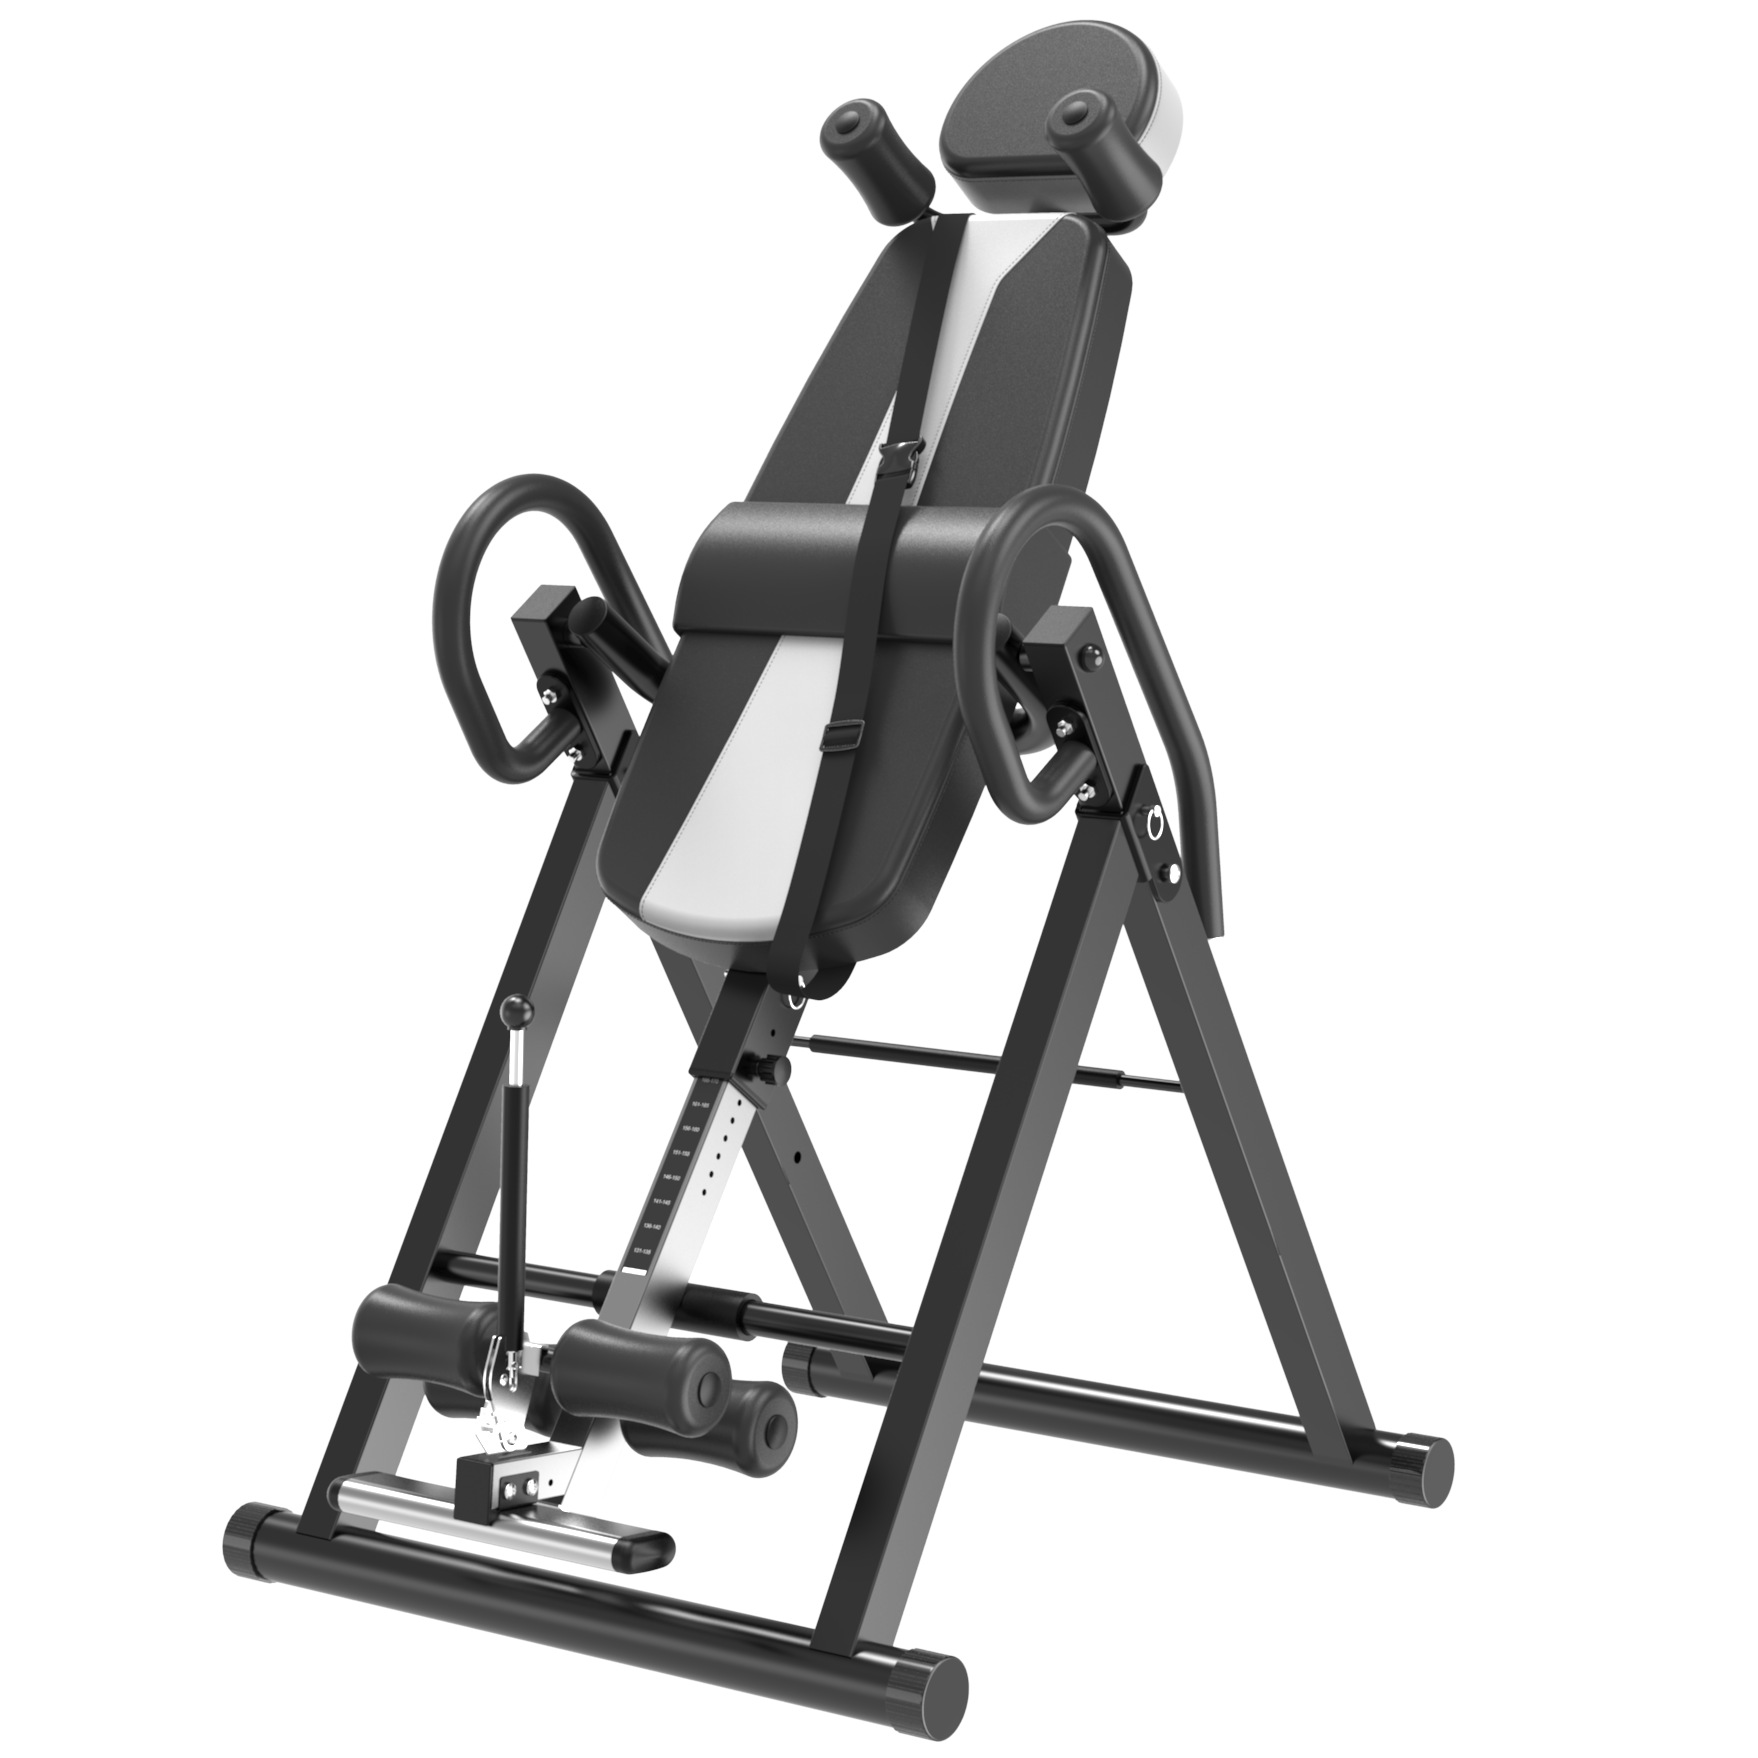 High Quality Safer Integrated Fitness Equipment Inversion Table Back Stretcher Machine for Pain Relief Therapy Height